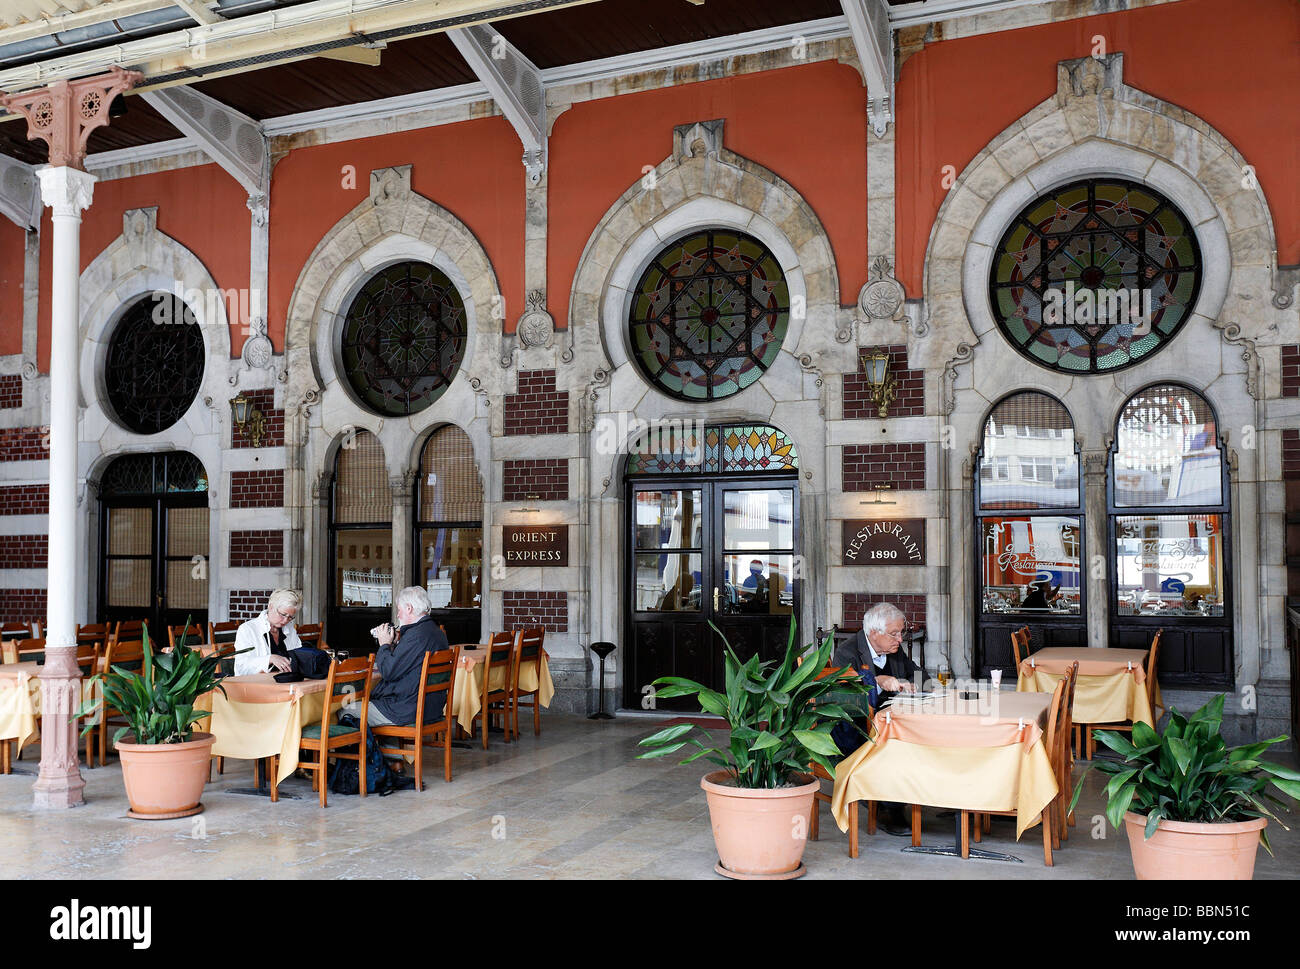 orient express restaurant historischen bahnhof sirkeci. Black Bedroom Furniture Sets. Home Design Ideas